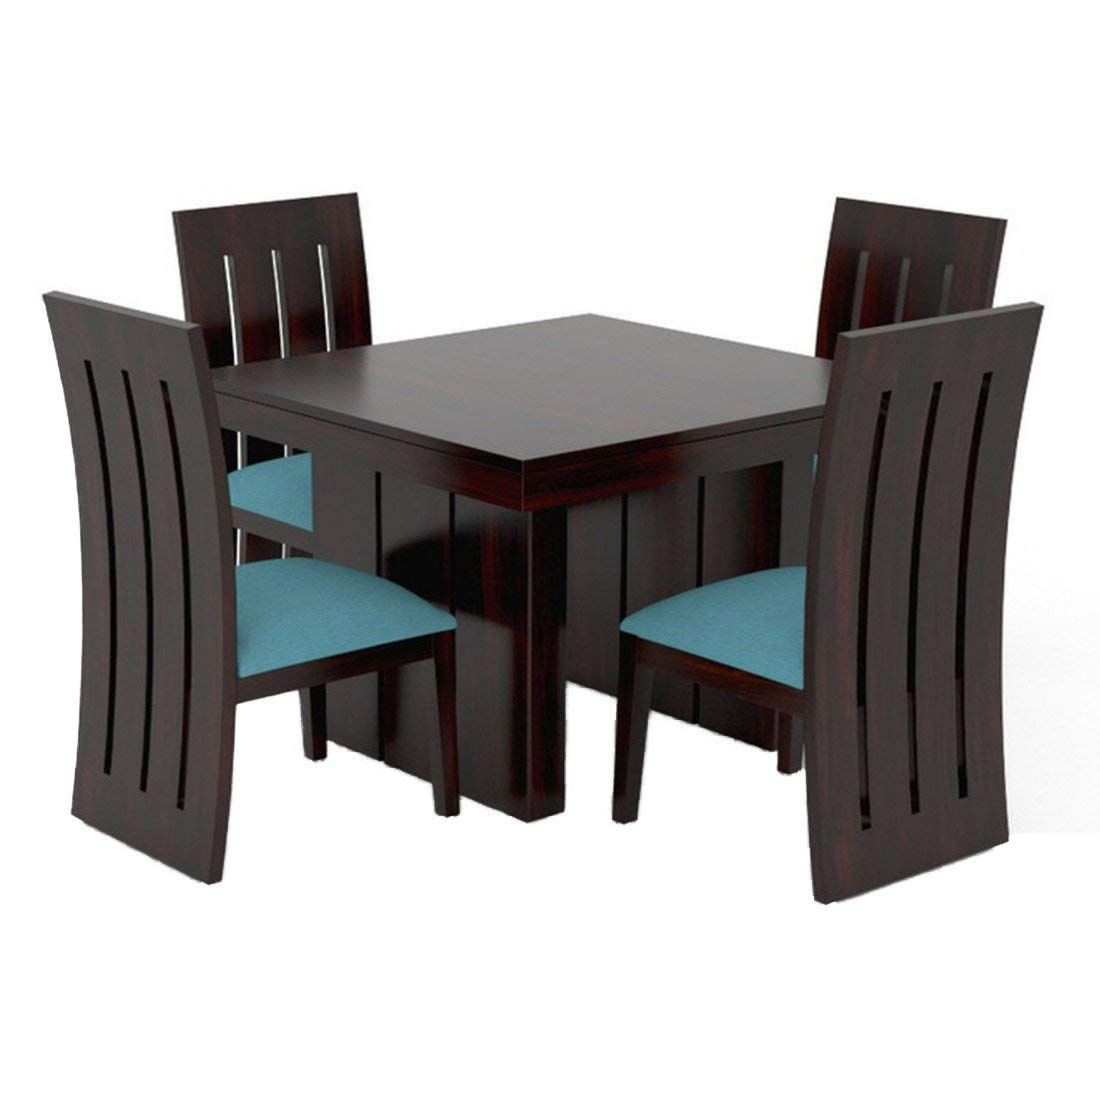 Mamta Decoration Sheesham Wood 4 Seater Dining Table Set With Cushioned Chairs Wood Dining Table Dining Room Sets Dinning Room Sets